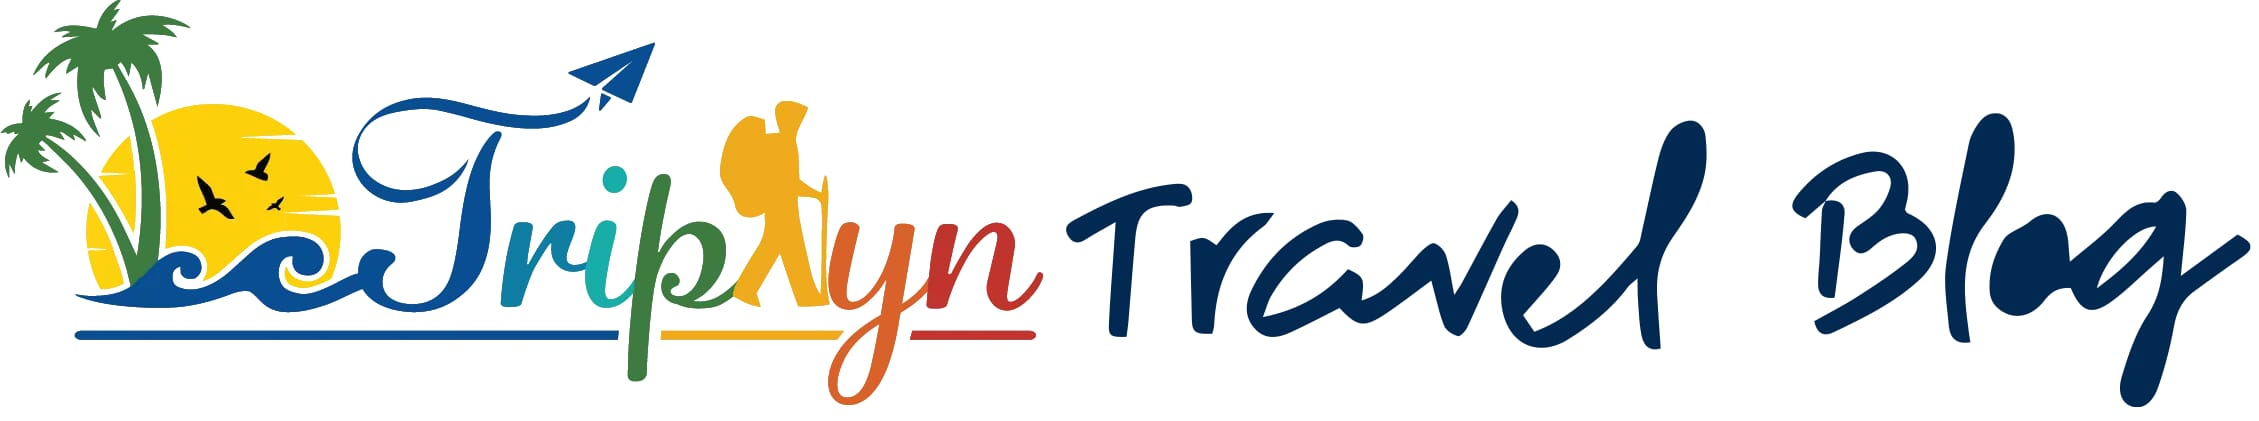 triplyn travel blog